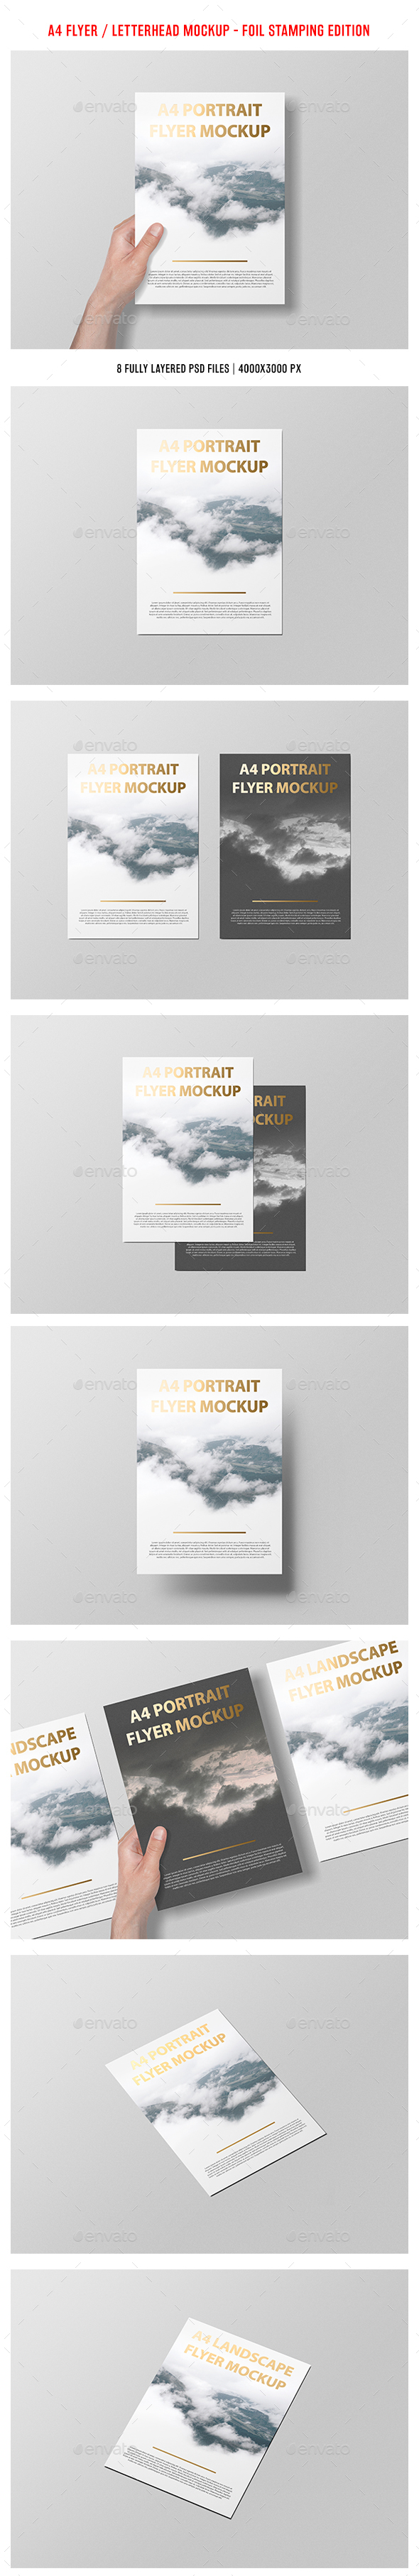 A4 Portait Flyer / Letterhead Mockup - Foil Stamping Edition - Flyers Print